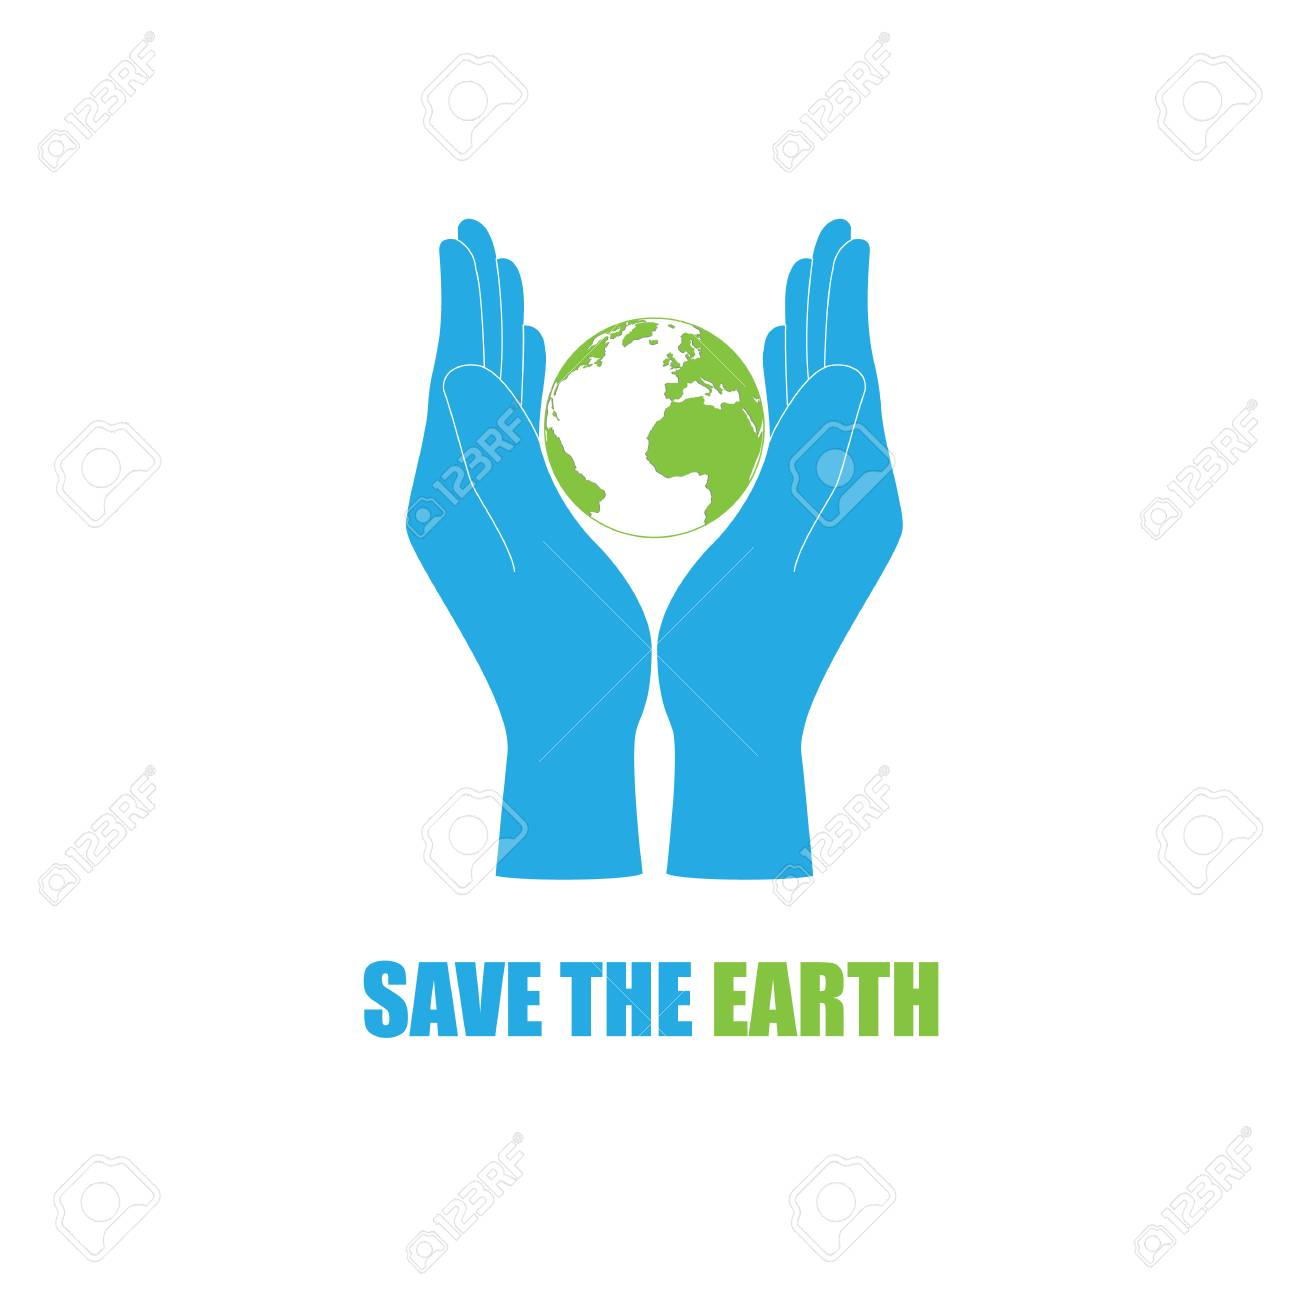 Save The Earth Icon Logo Graphic Design For Saving Environment Royalty Free Cliparts Vectors And Stock Illustration Image 71713969,French Kitchen Design 2020